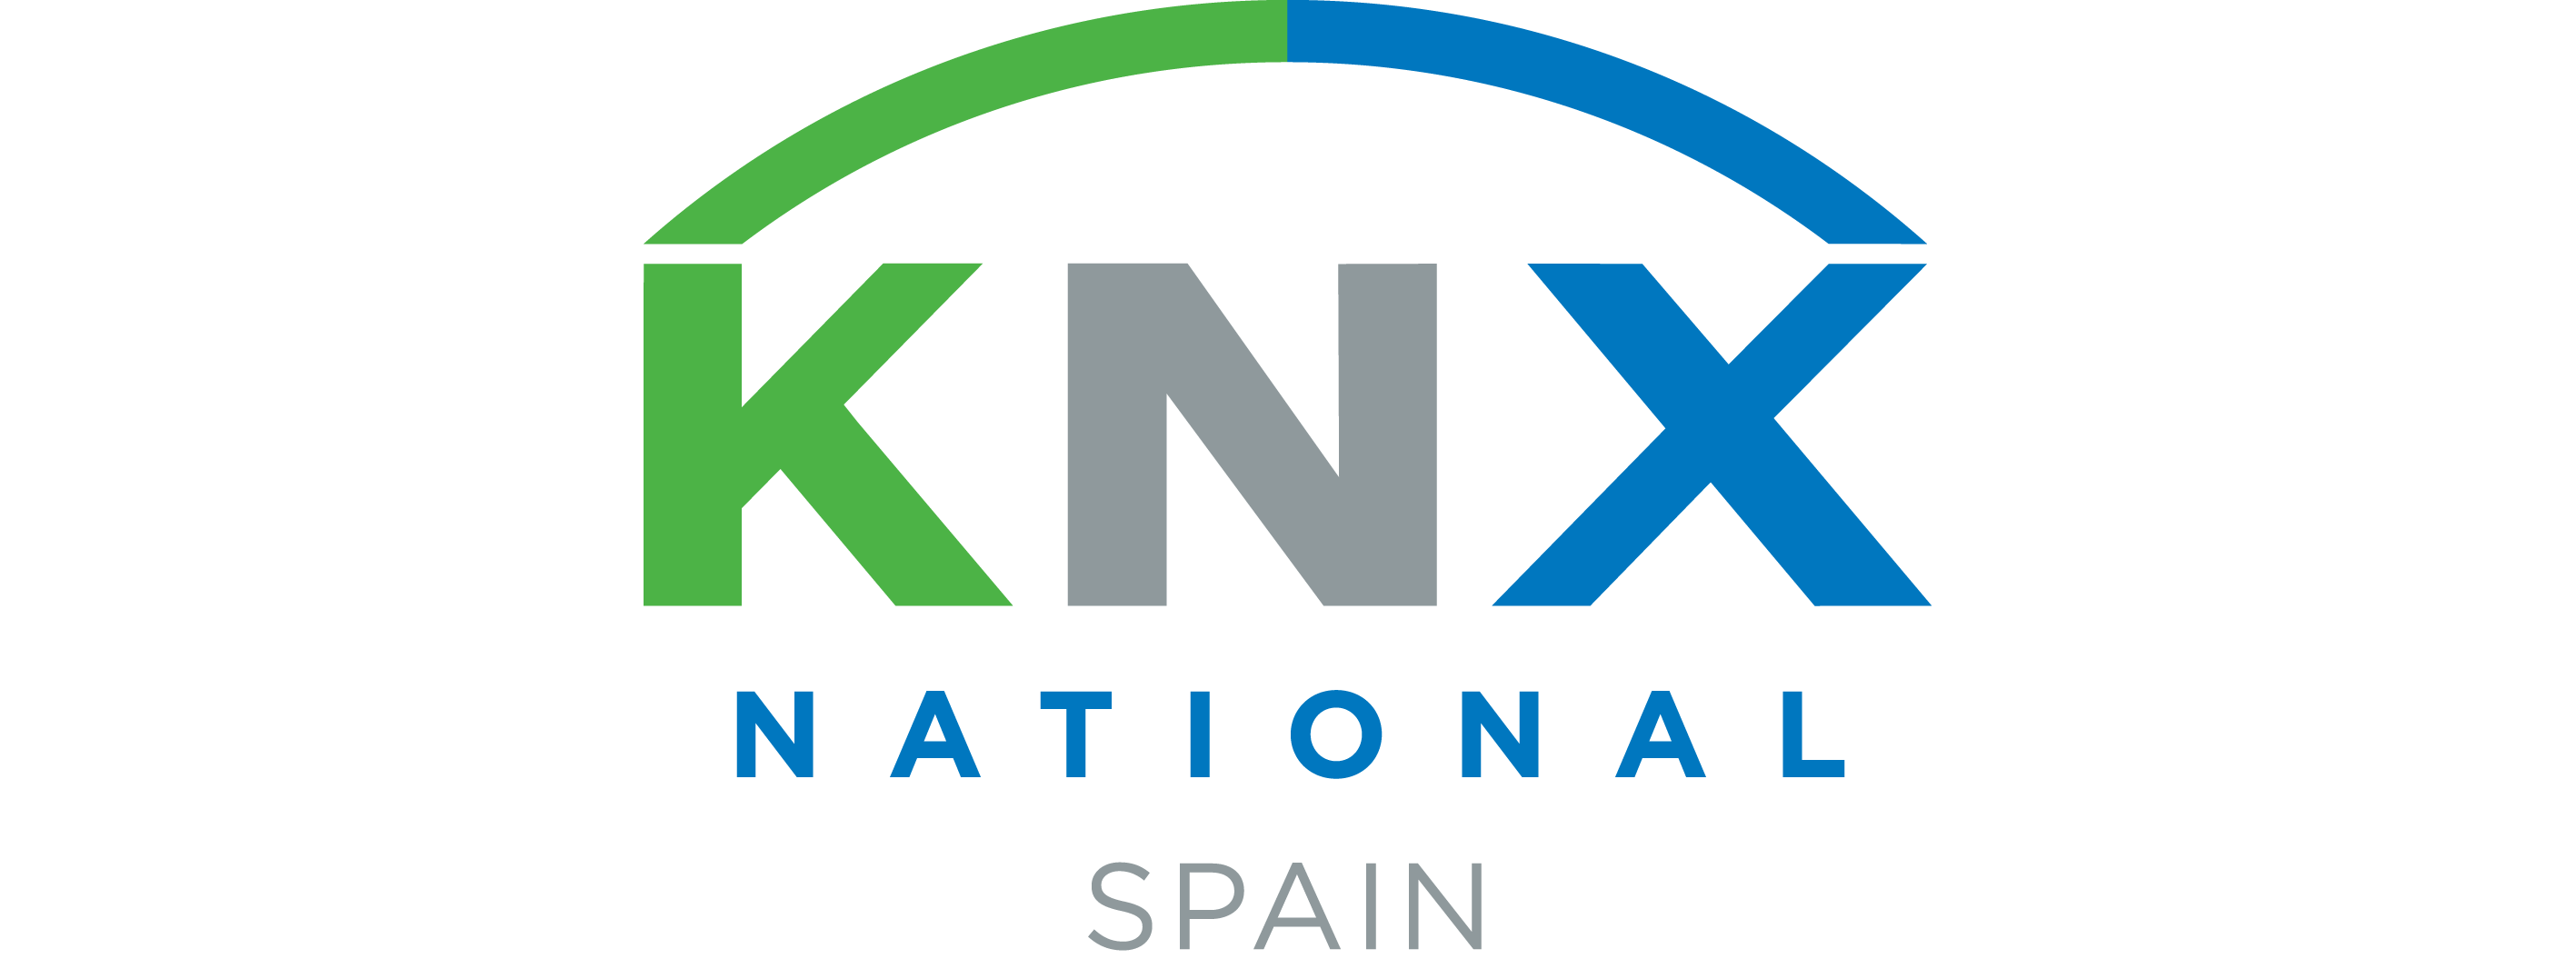 KNX NATIONAL SPAIN